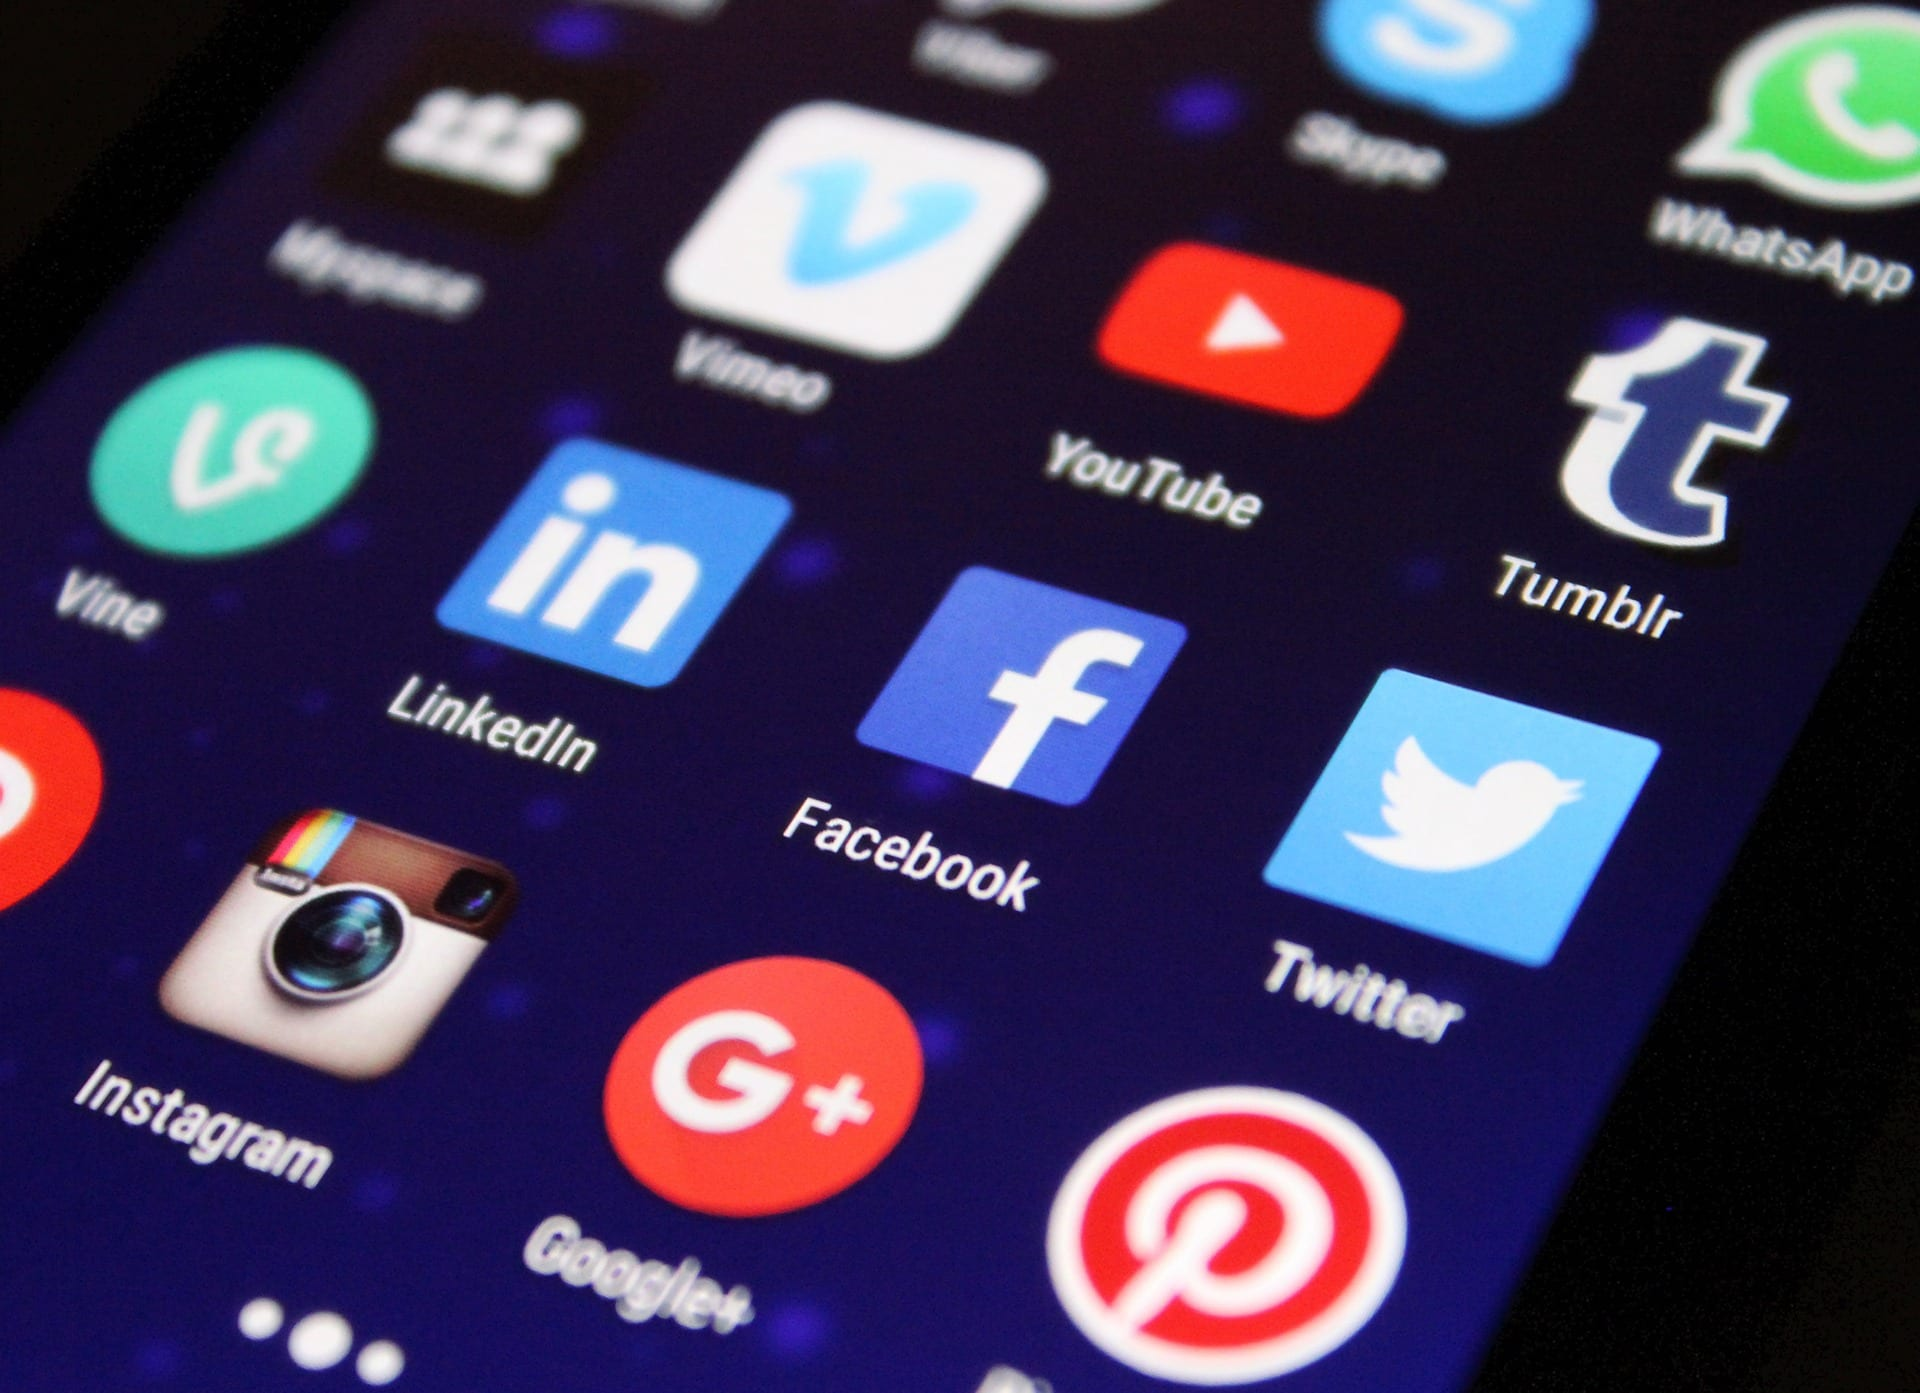 7 Reasons Social Media in the Workplace can Help Employees | TOG